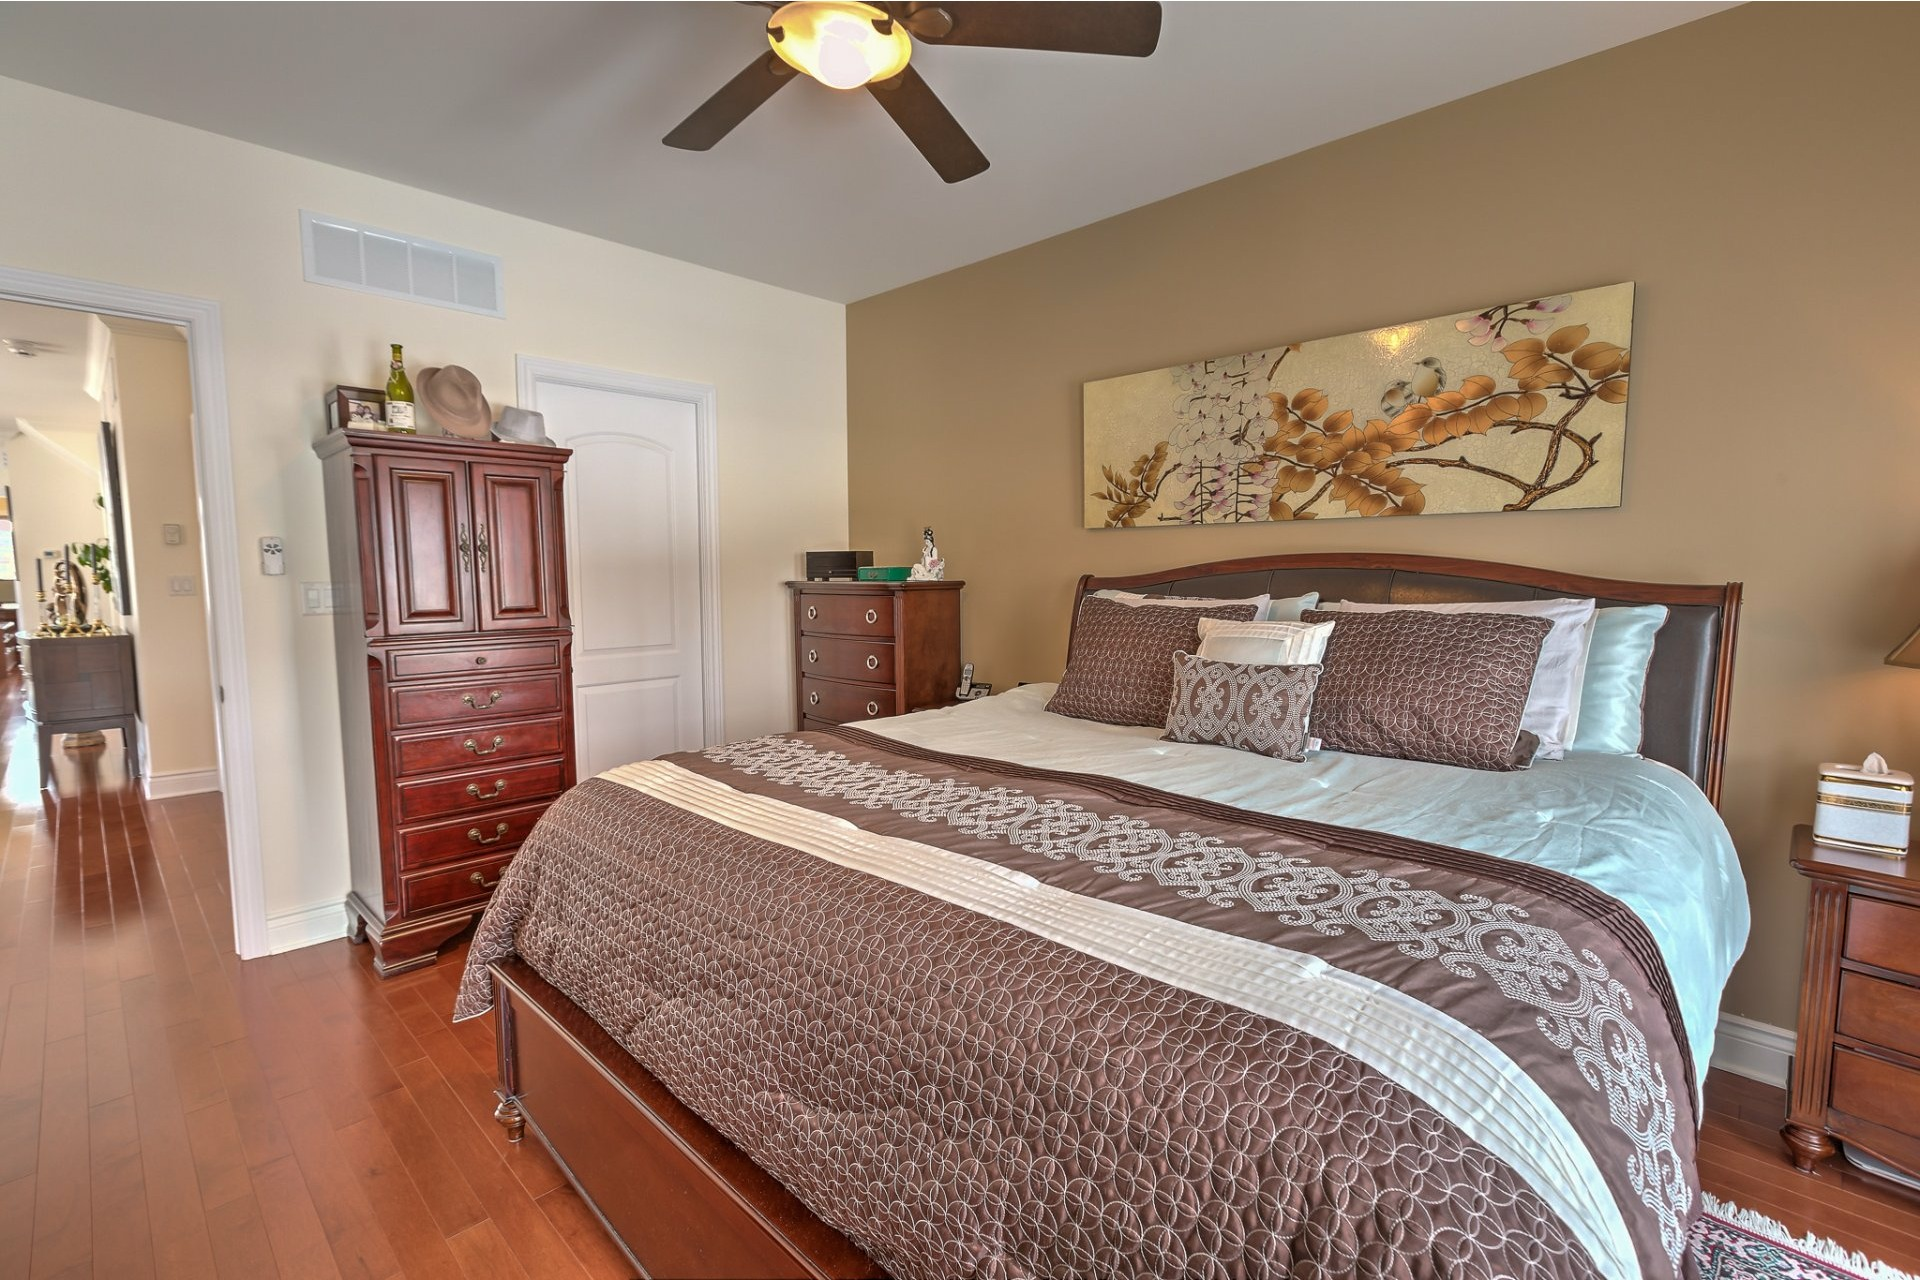 image 15 - Apartment For sale Brossard - 7 rooms